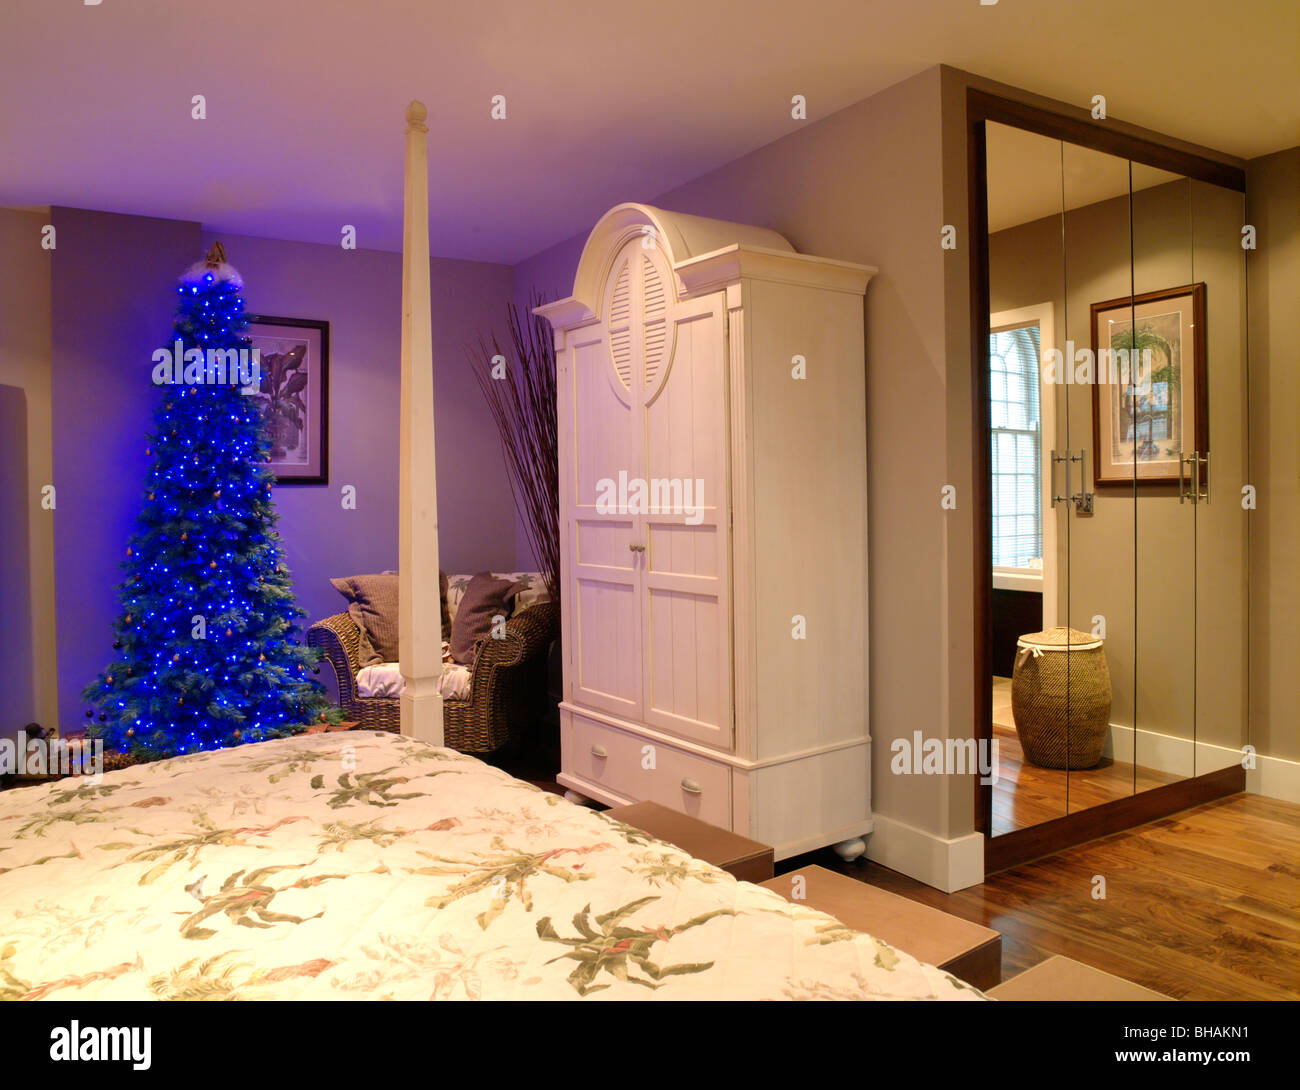 Christmas images. Including Christmas dining tables,front doors,snowy houses,mantlepieces,decorations,trees,wreaths,fireplaces, Stock Photo